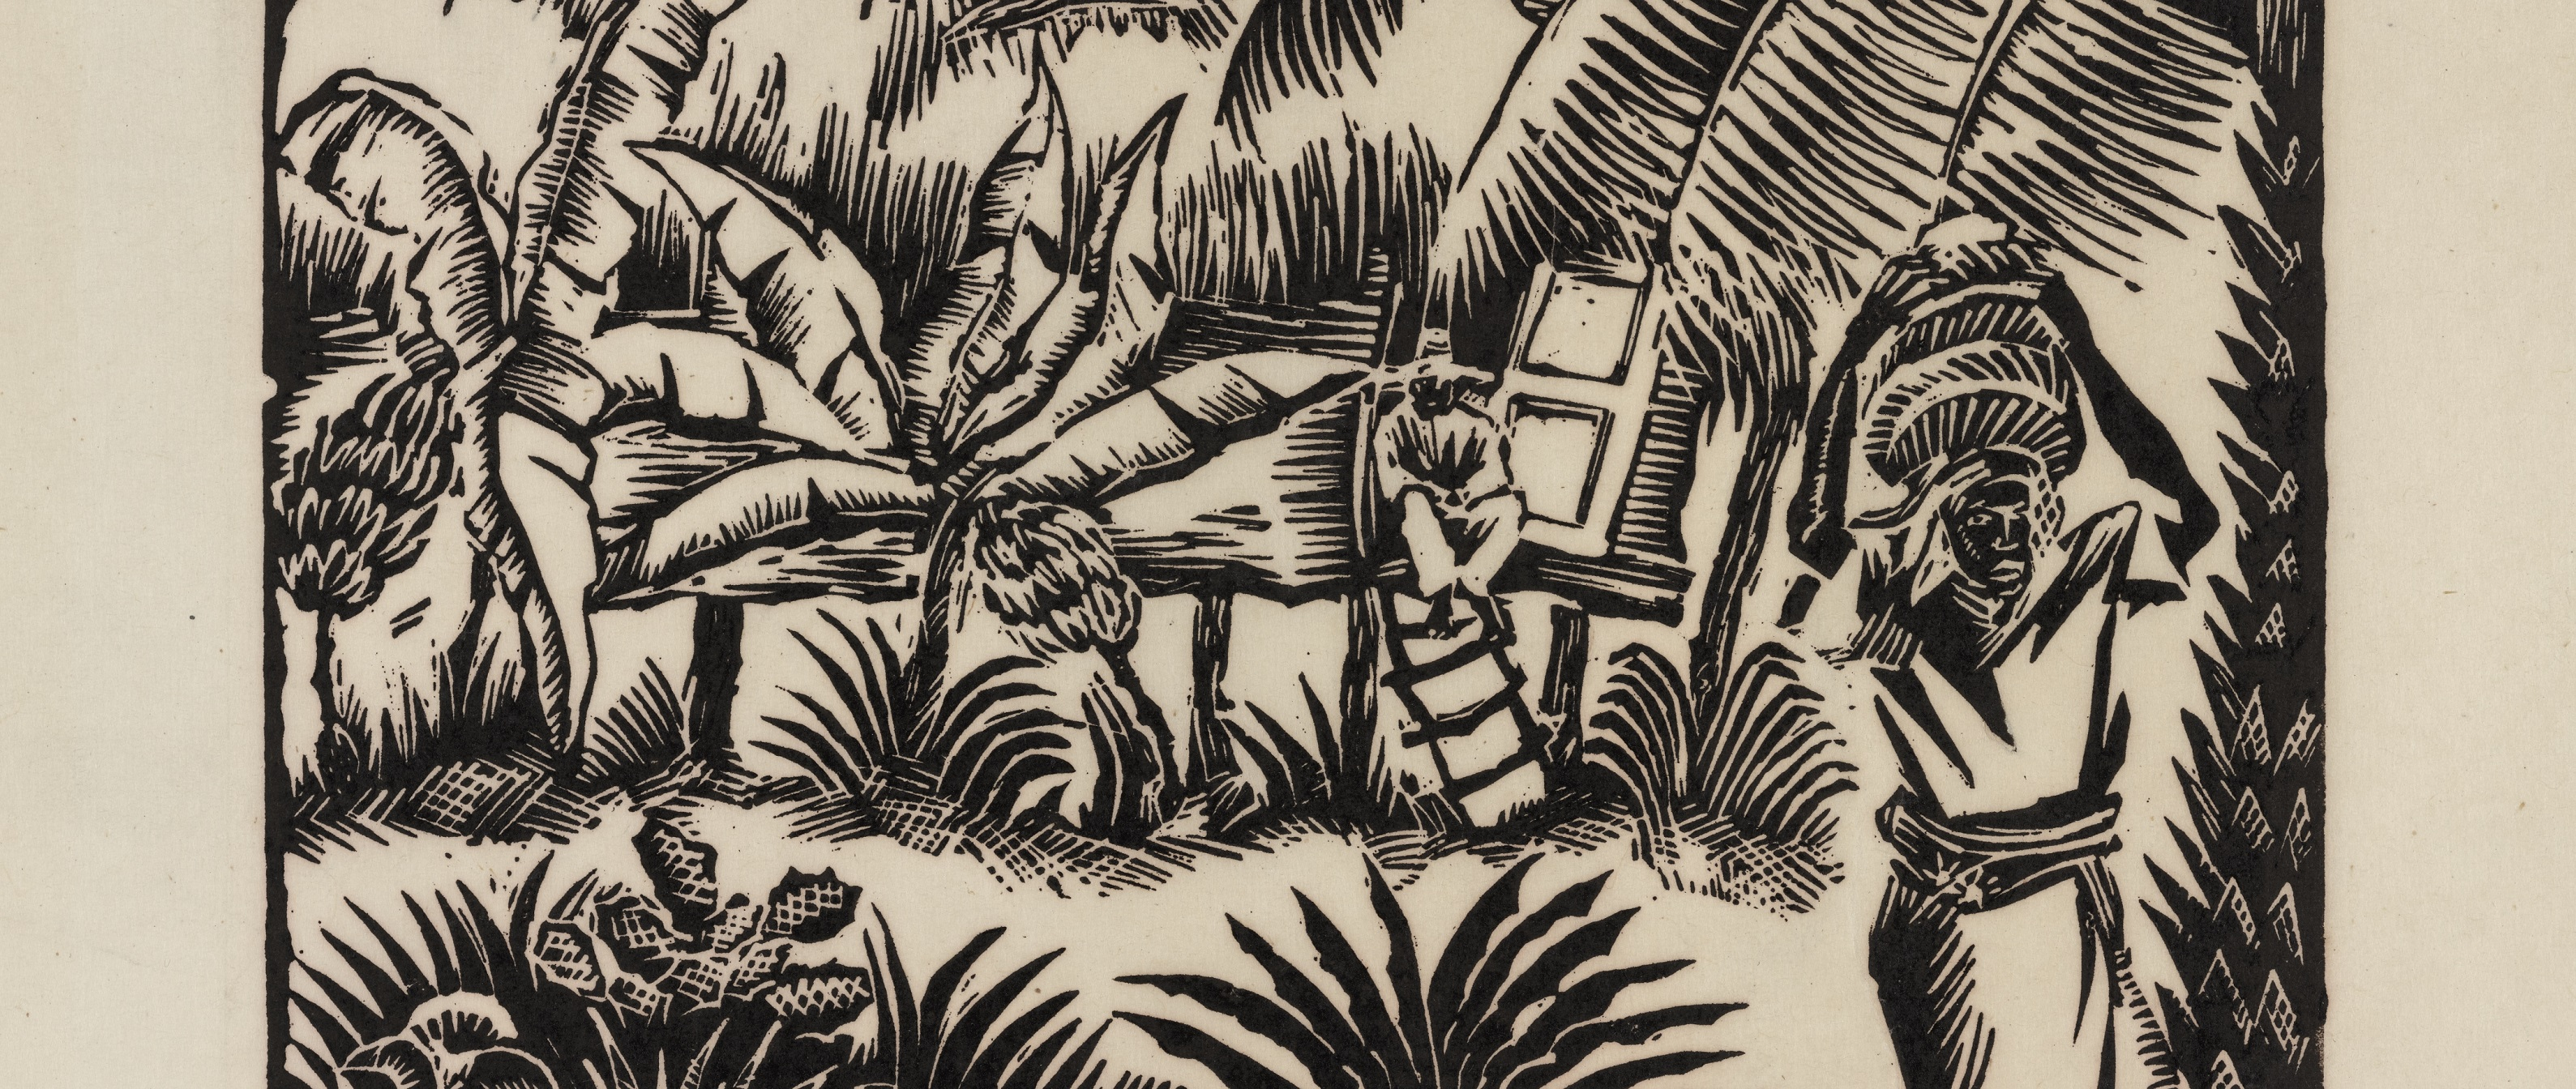 Black-and-white woodblock print (detail) showing African-American person holding basket of bananas.